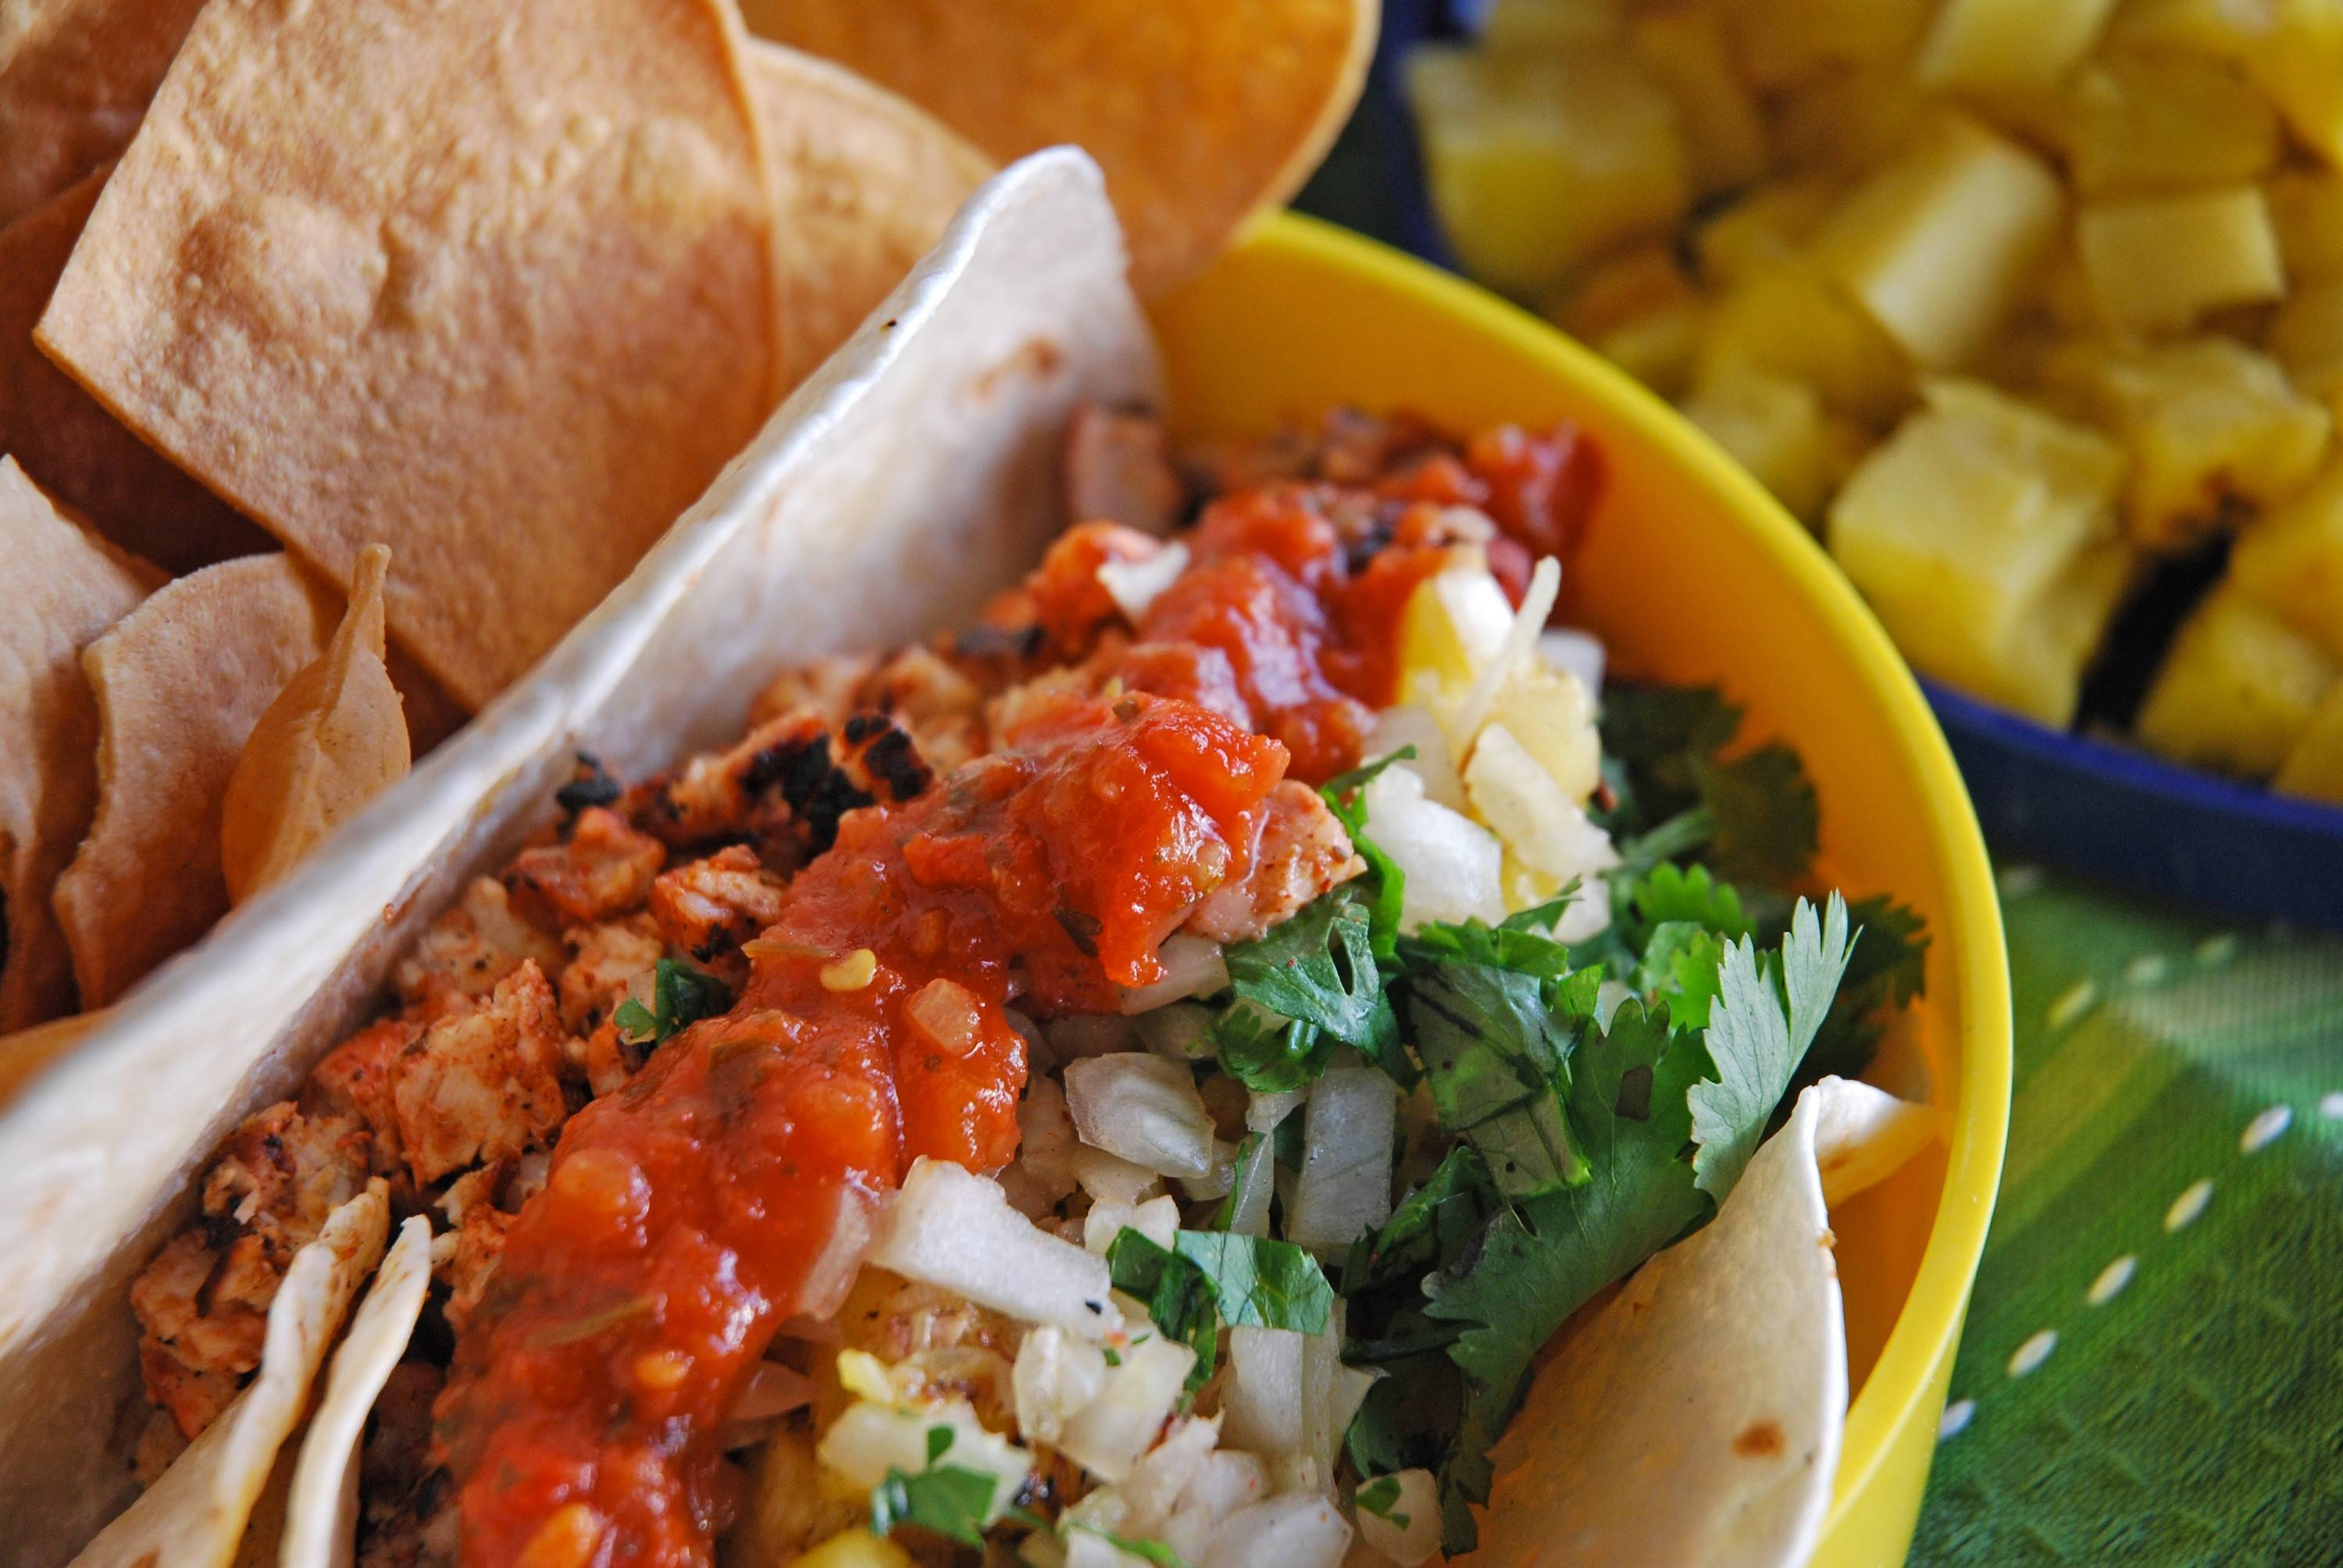 Fire up the grill and try this Chipotle-inspired dish